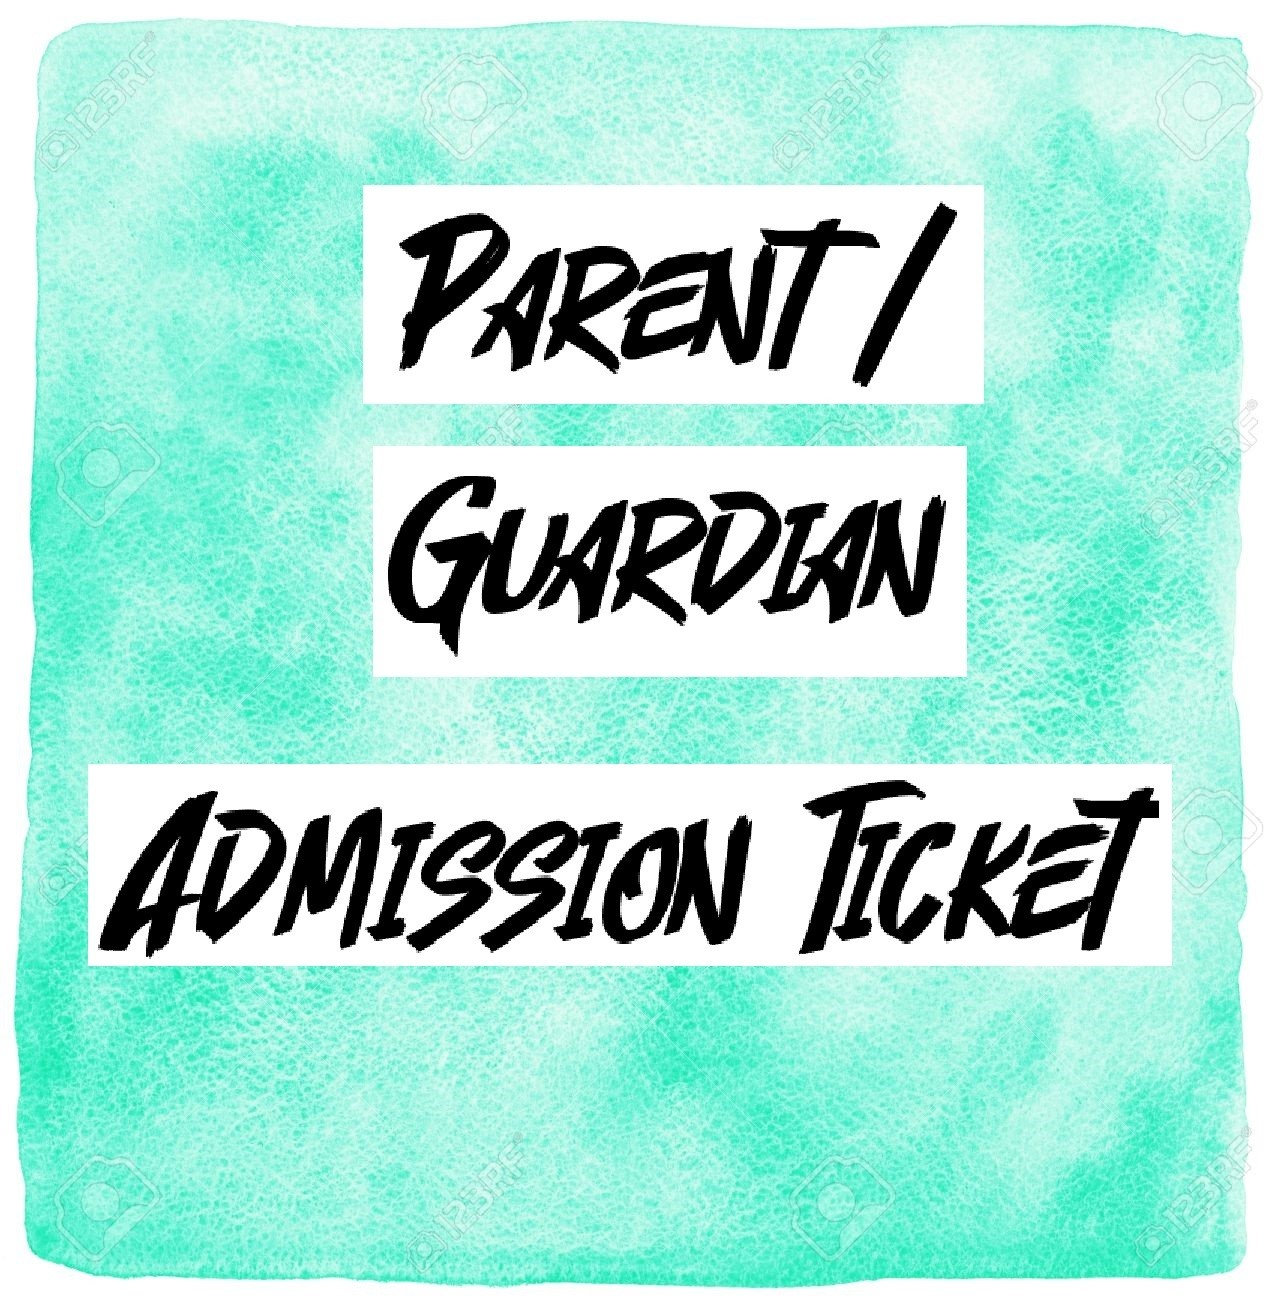 Slime-A-Con Parent/Guardian Ticket